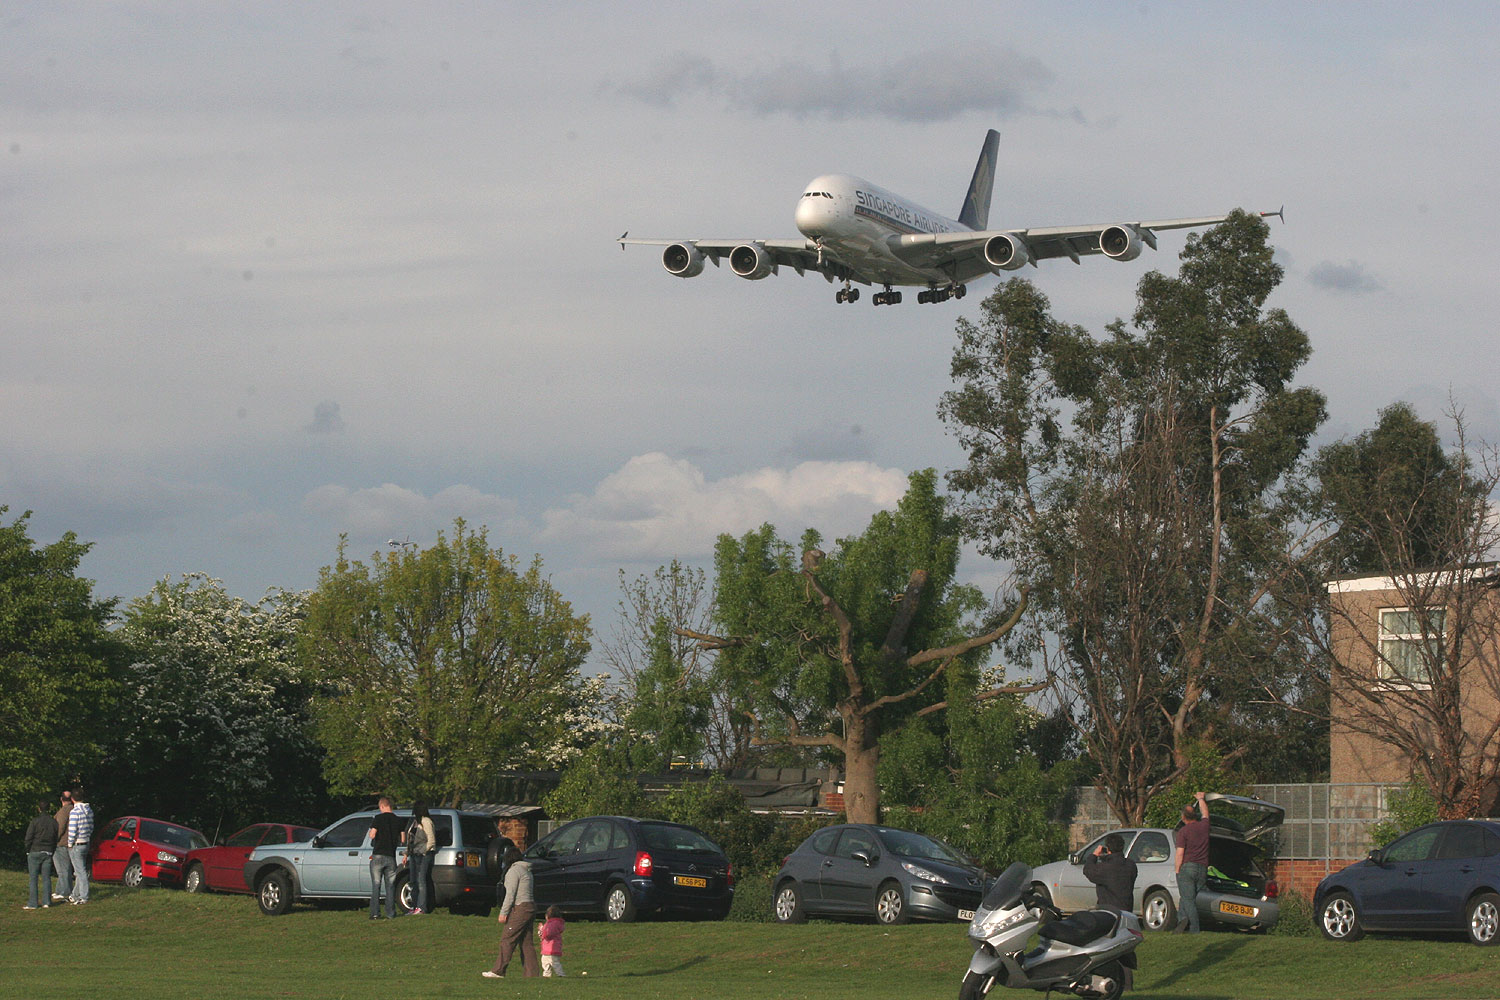 Airbus A380 at Heathrow's Myrtle Avenue Spotting Location